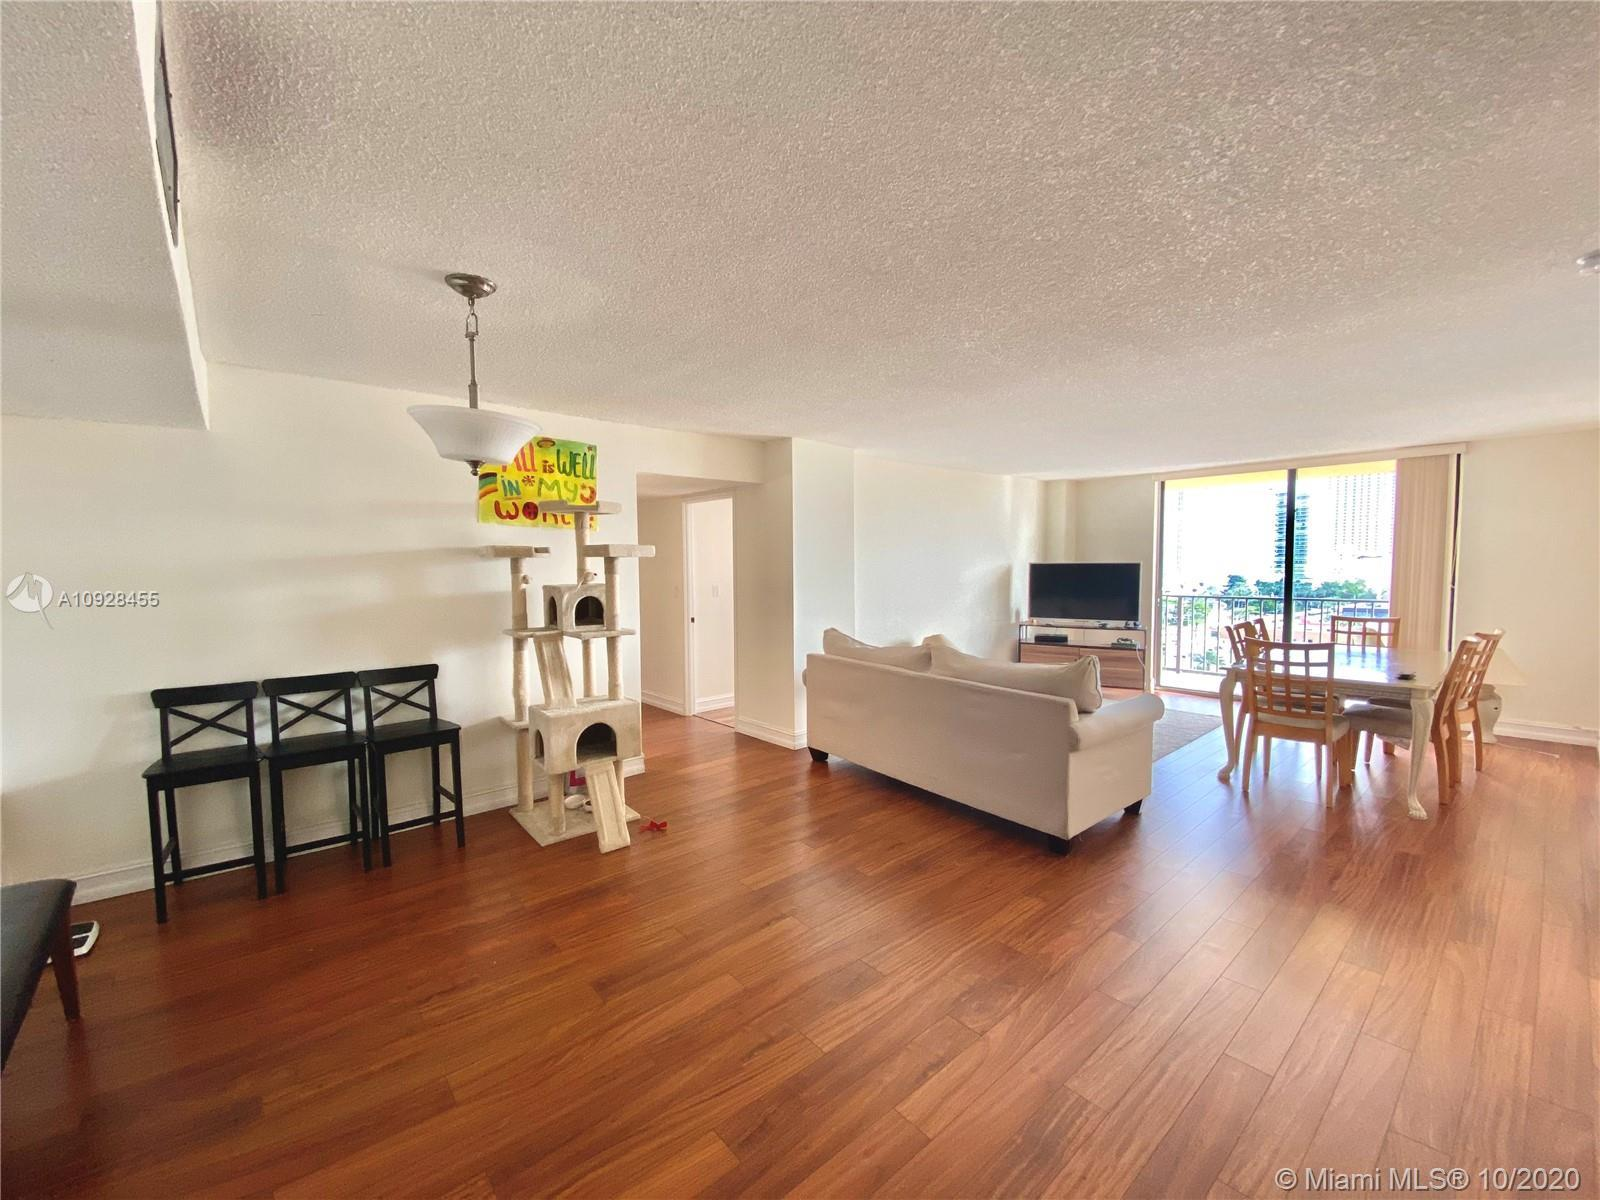 Spacious 3 bedroom 2 bathroom unit with washer and dryer inside. Plenty of closet space, parking att